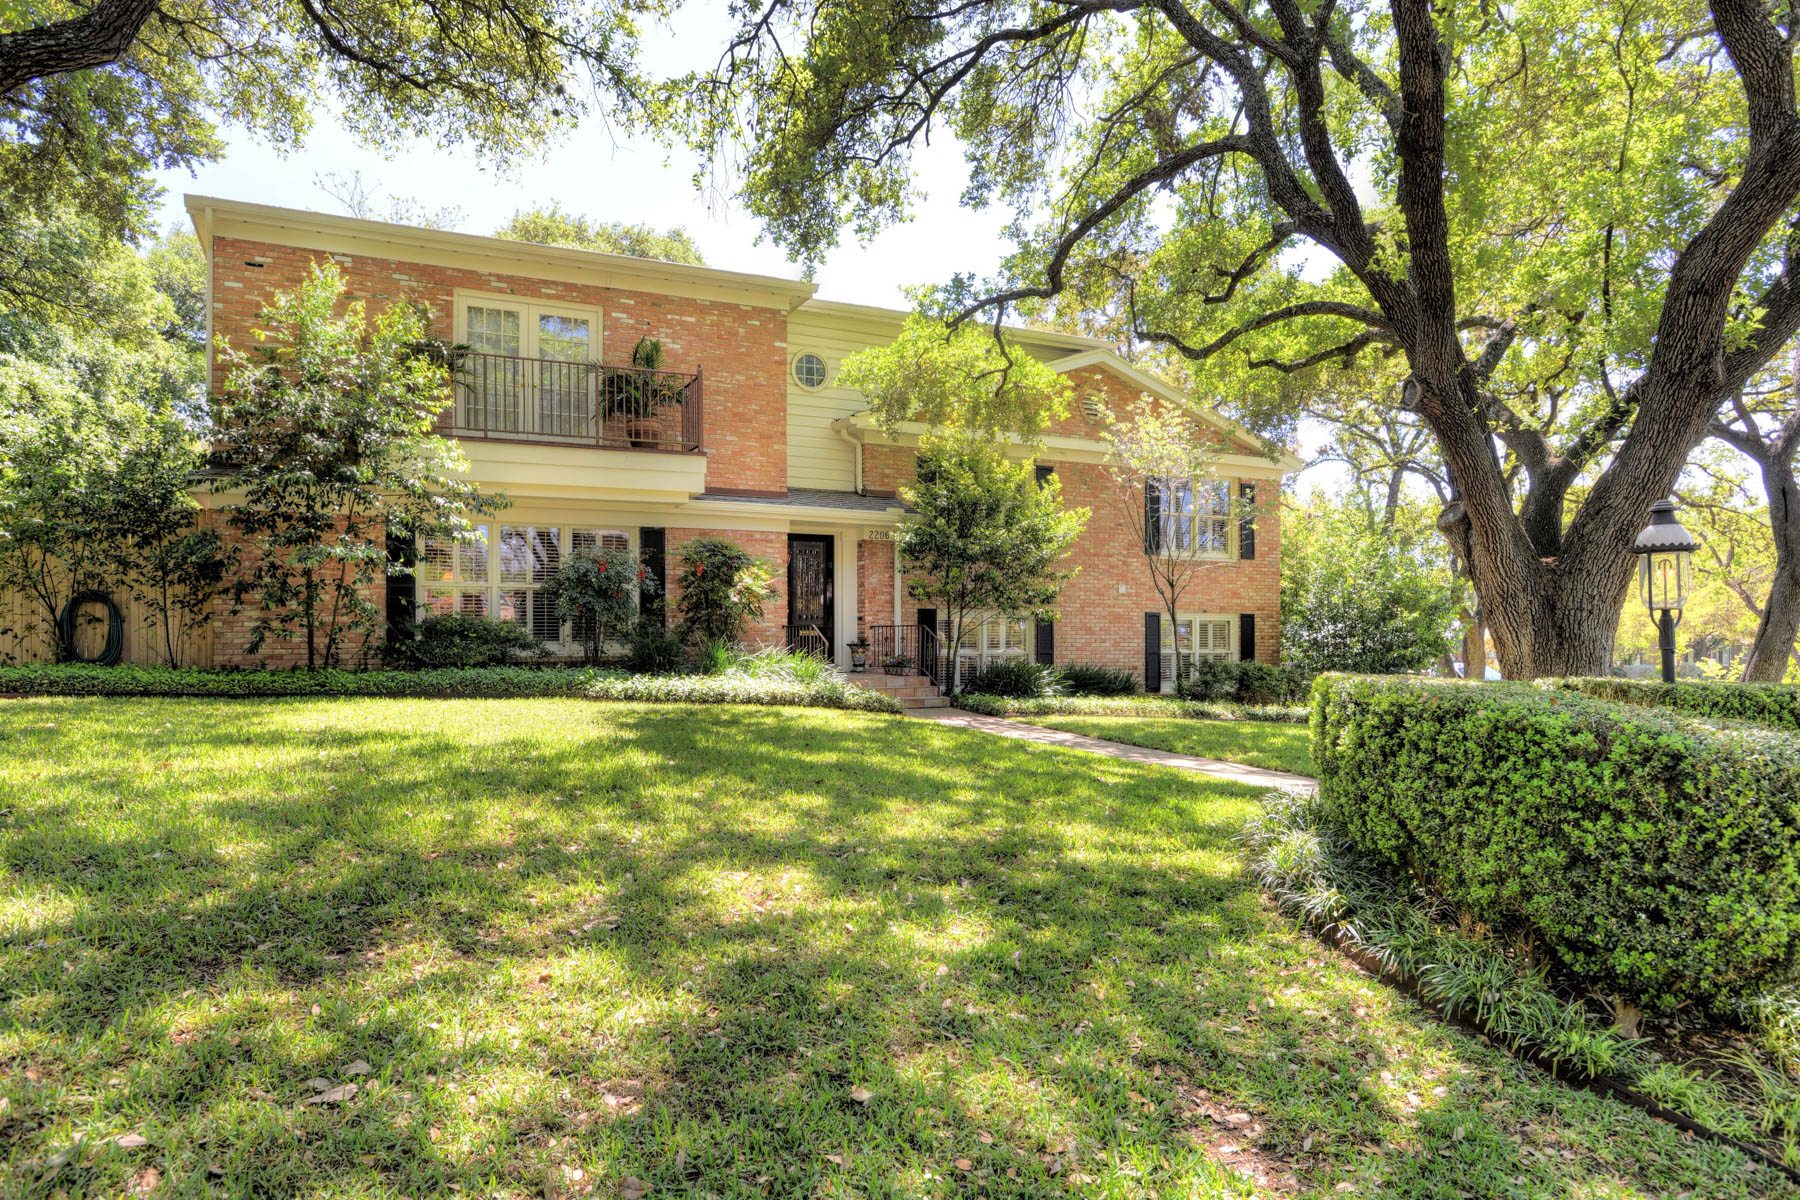 Maison unifamiliale pour l Vente à Family Home in Meadow Wood Estates in AHISD 2206 Briarwood Dr San Antonio, Texas, 78209 États-Unis